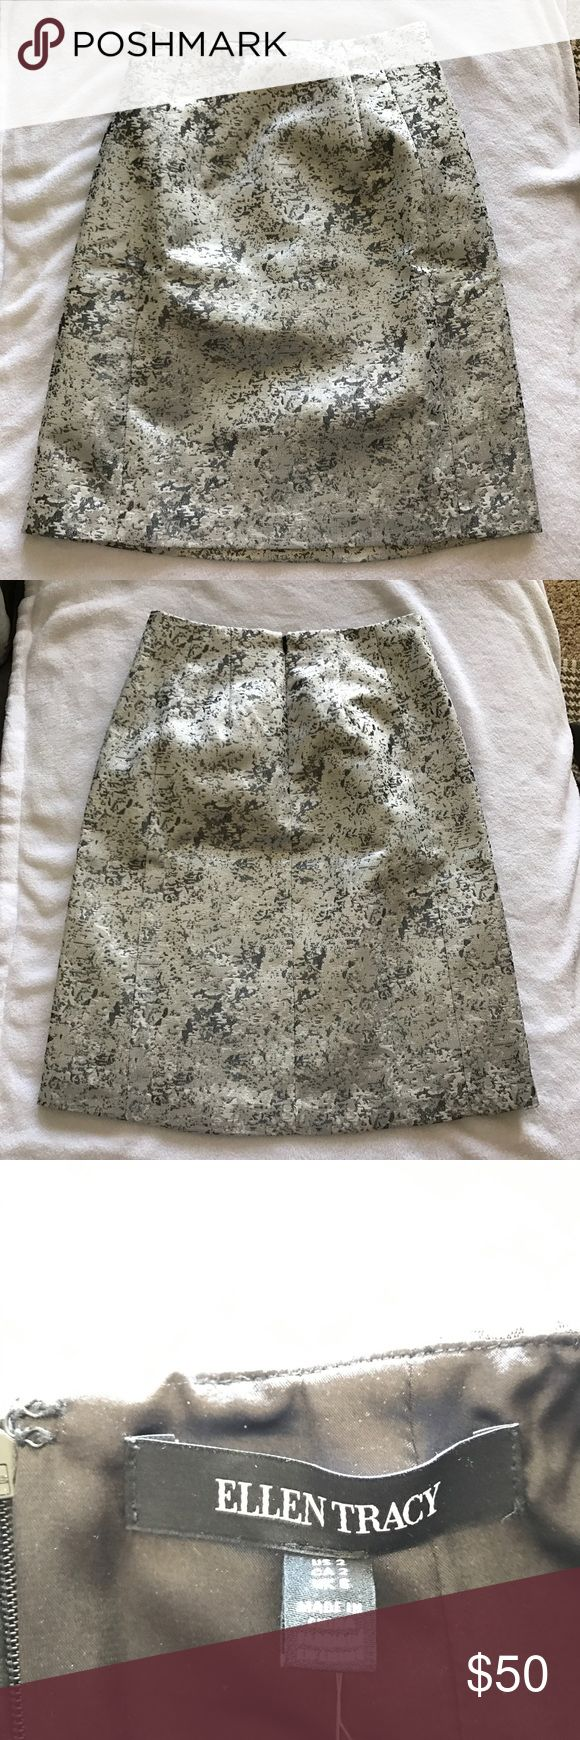 NWT Ellen Tracy Skirt Super cute silver and gray Ellen Tracy skirt! Perfect with a blouse! Never worn. Ellen Tracy Skirts